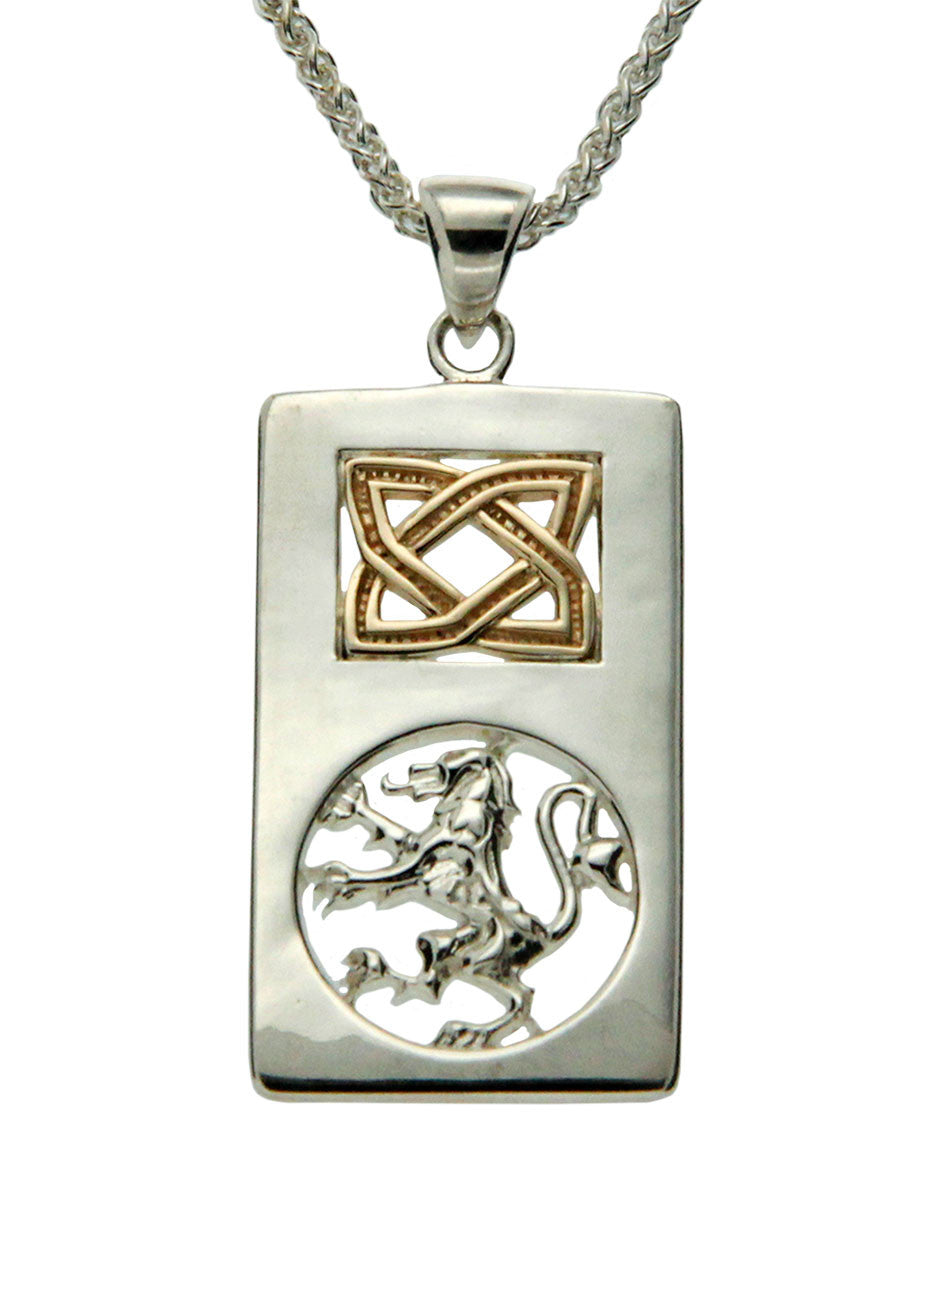 Scottish Rampant Pendant - Sterling Silver and 10k Gold